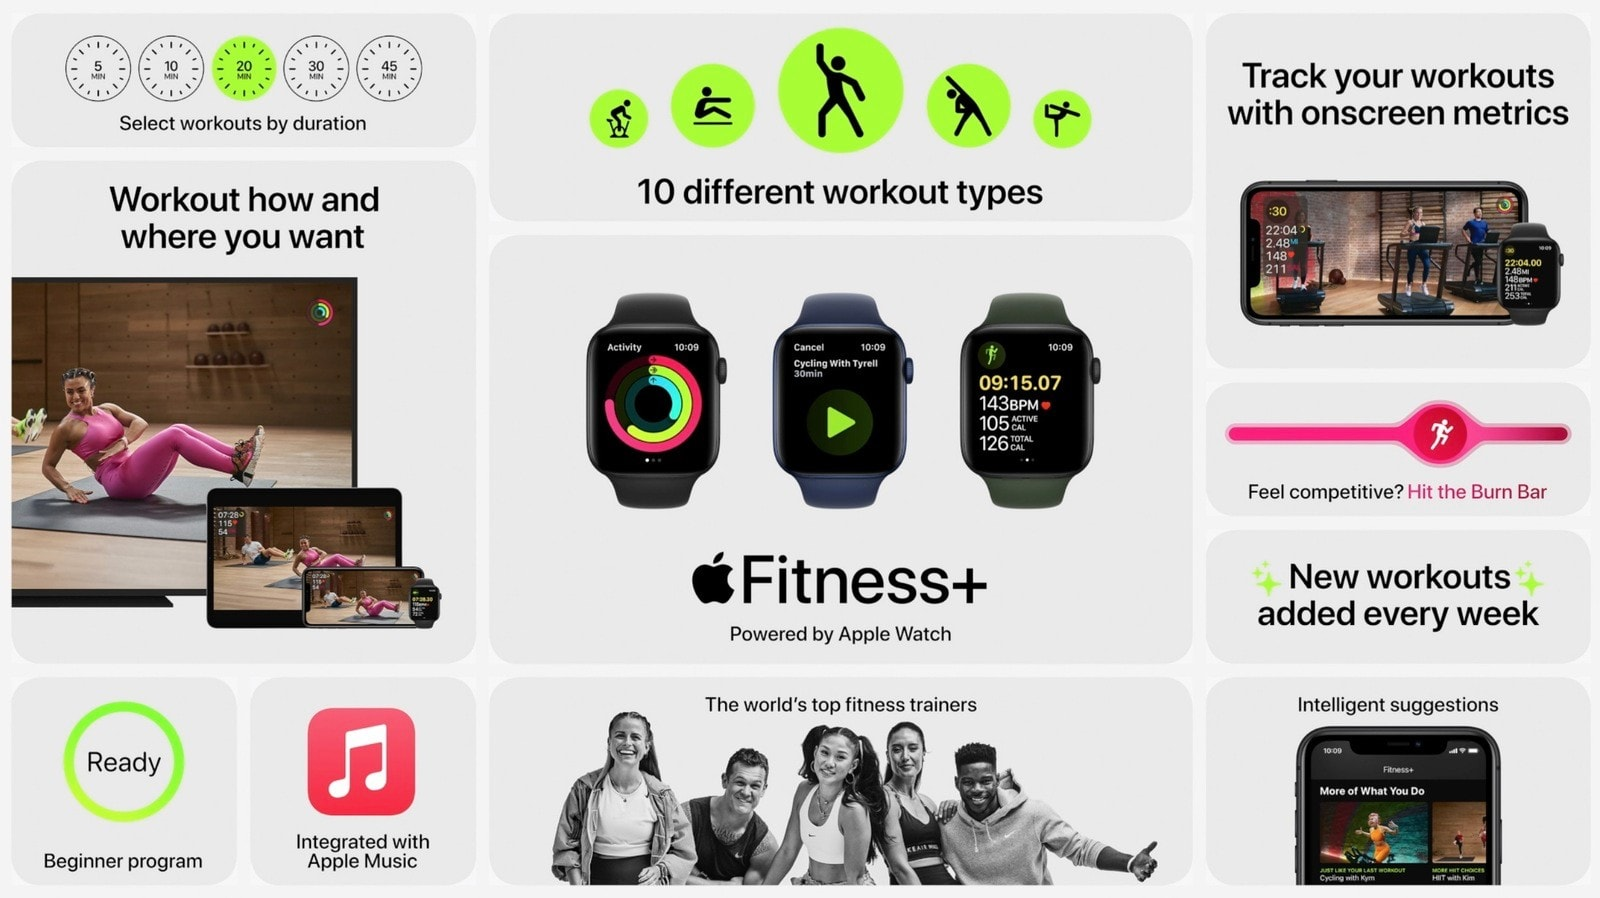 Will you be subscribing to Apple's new Fitness+ service?